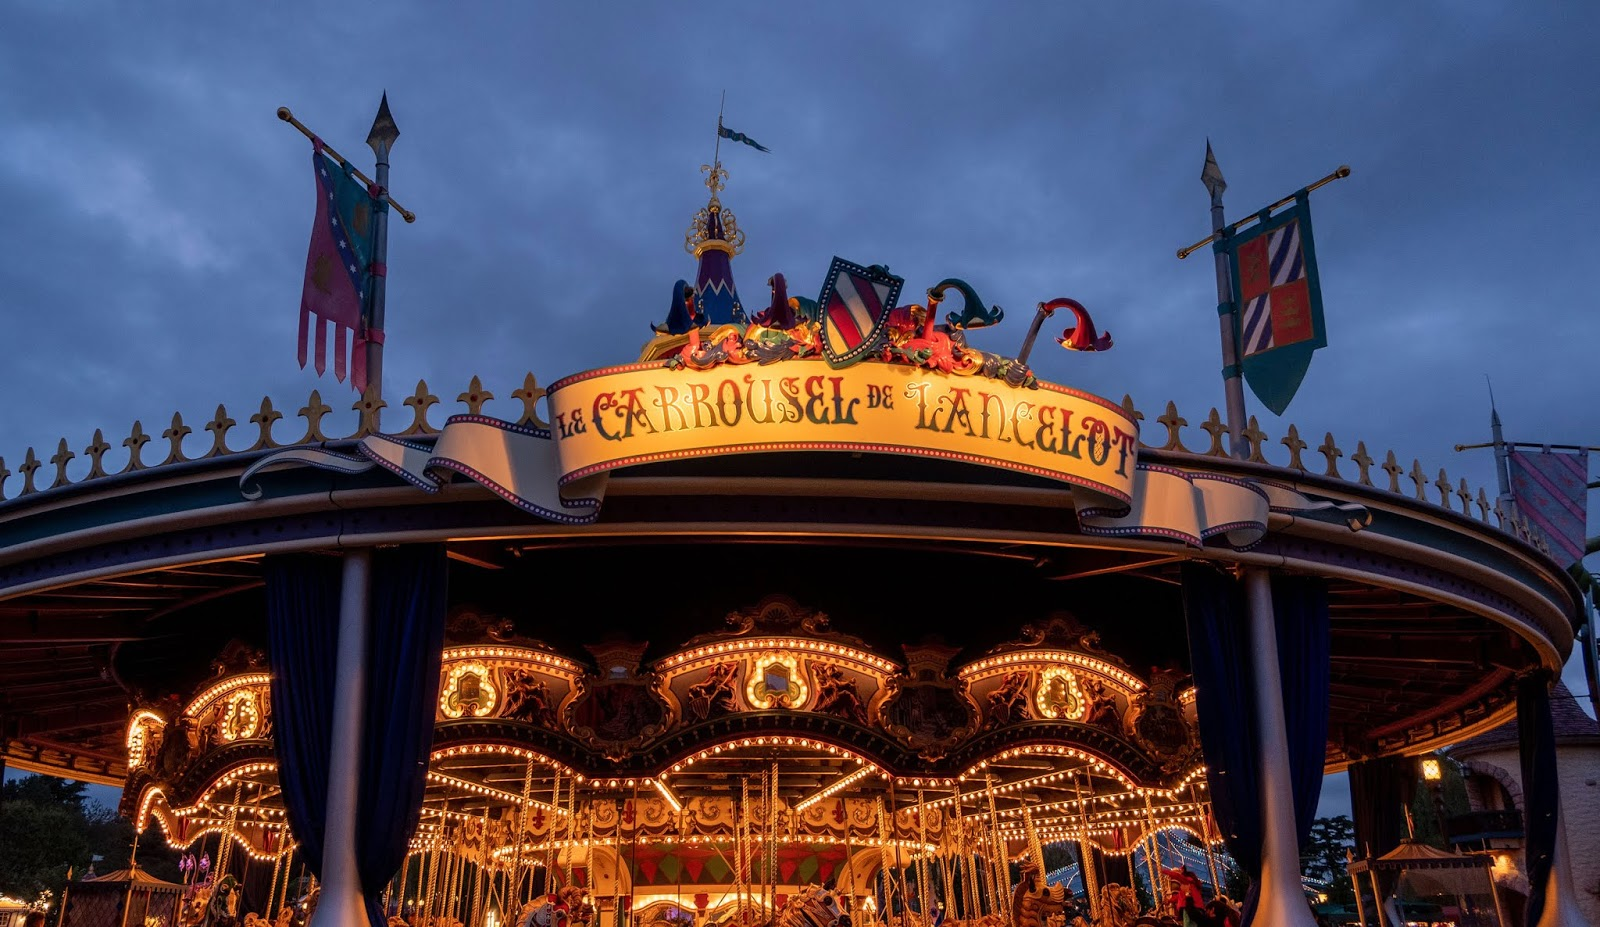 The carousel at Disneyland Paris